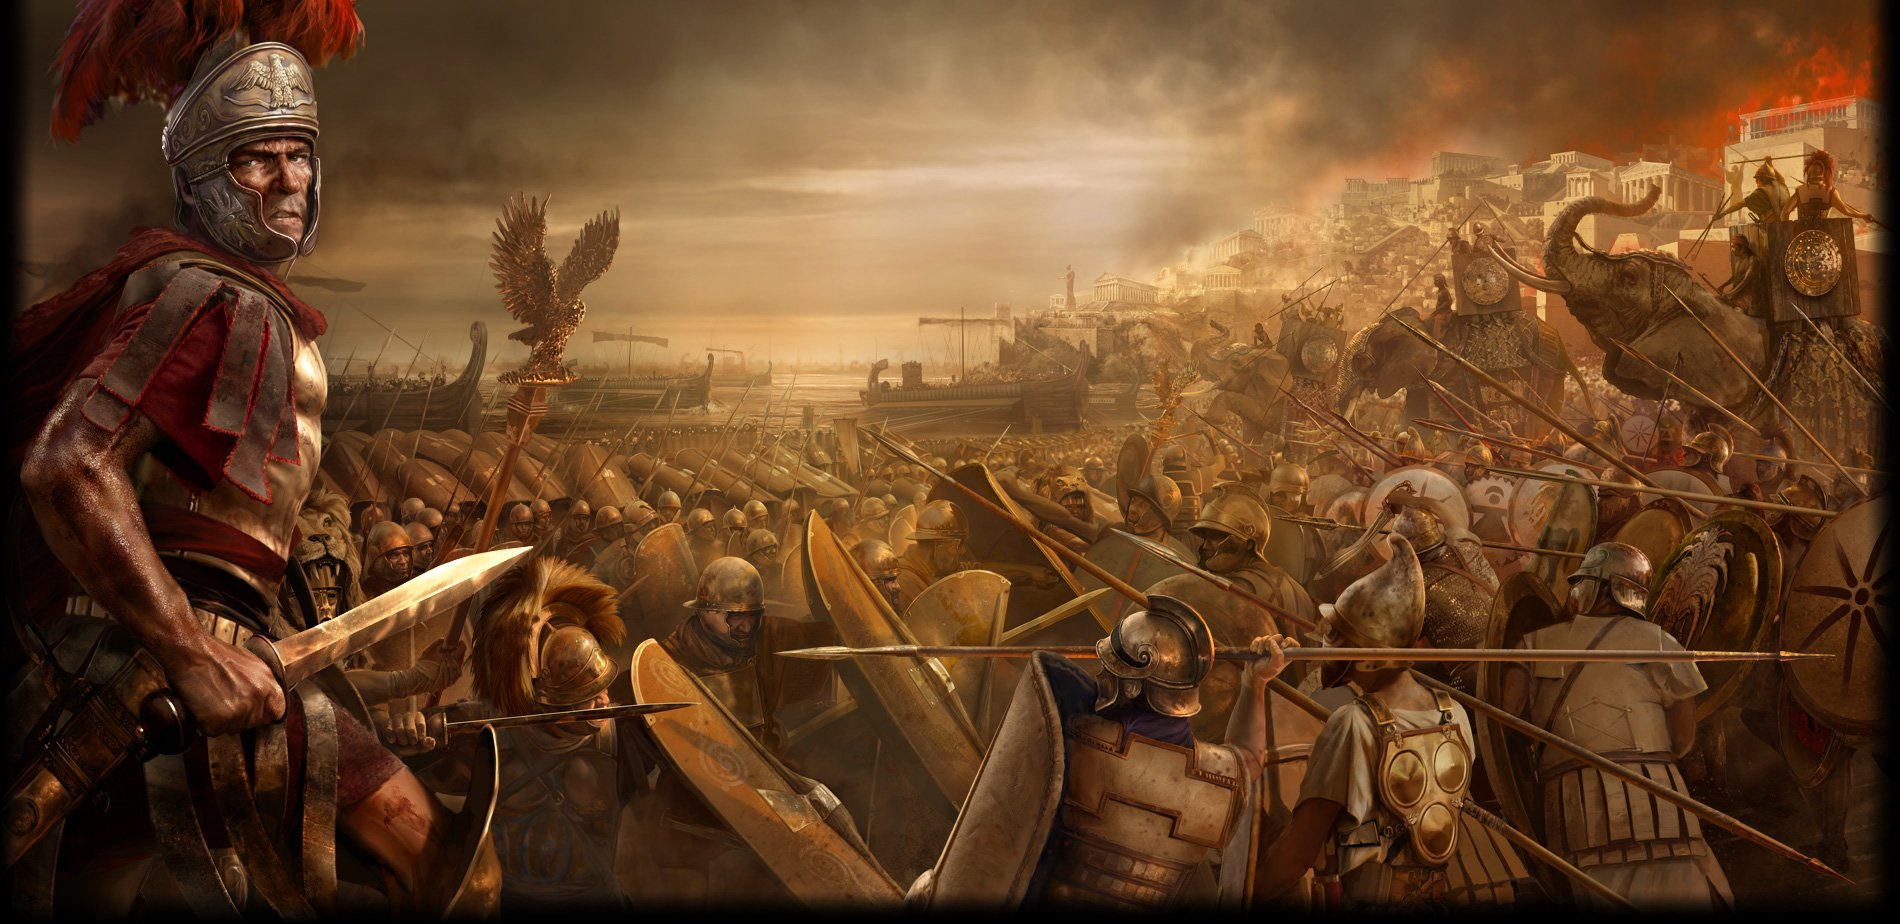 Total War Sega fantasy roman army warrior warriors battle wallpaper 1900x924